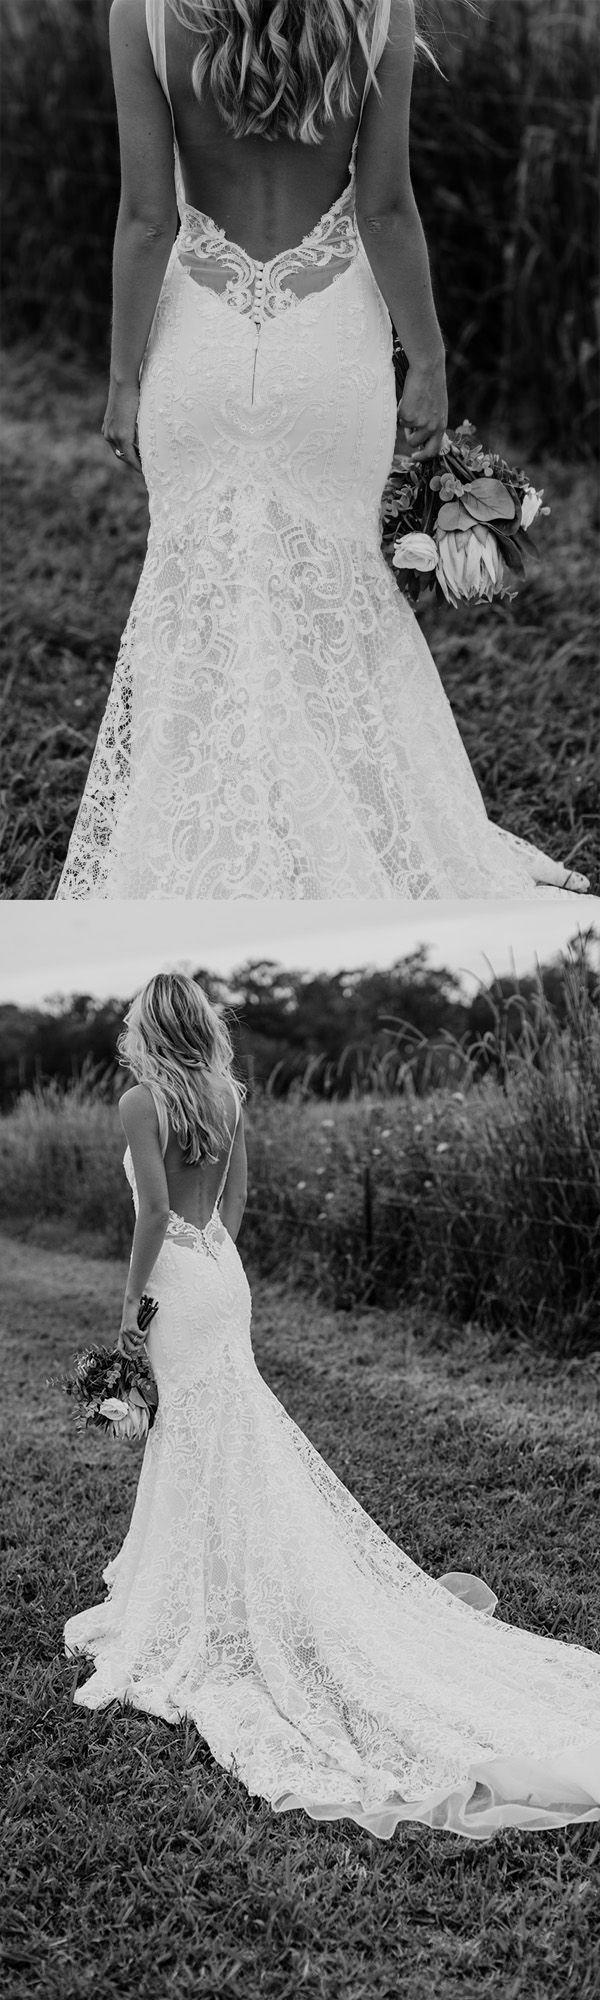 Daniela Visnjic saved to Future WeddingSexy low back wedding gown #weddingideas #weddingdressideas #weddingdresses #weddingdressgoals